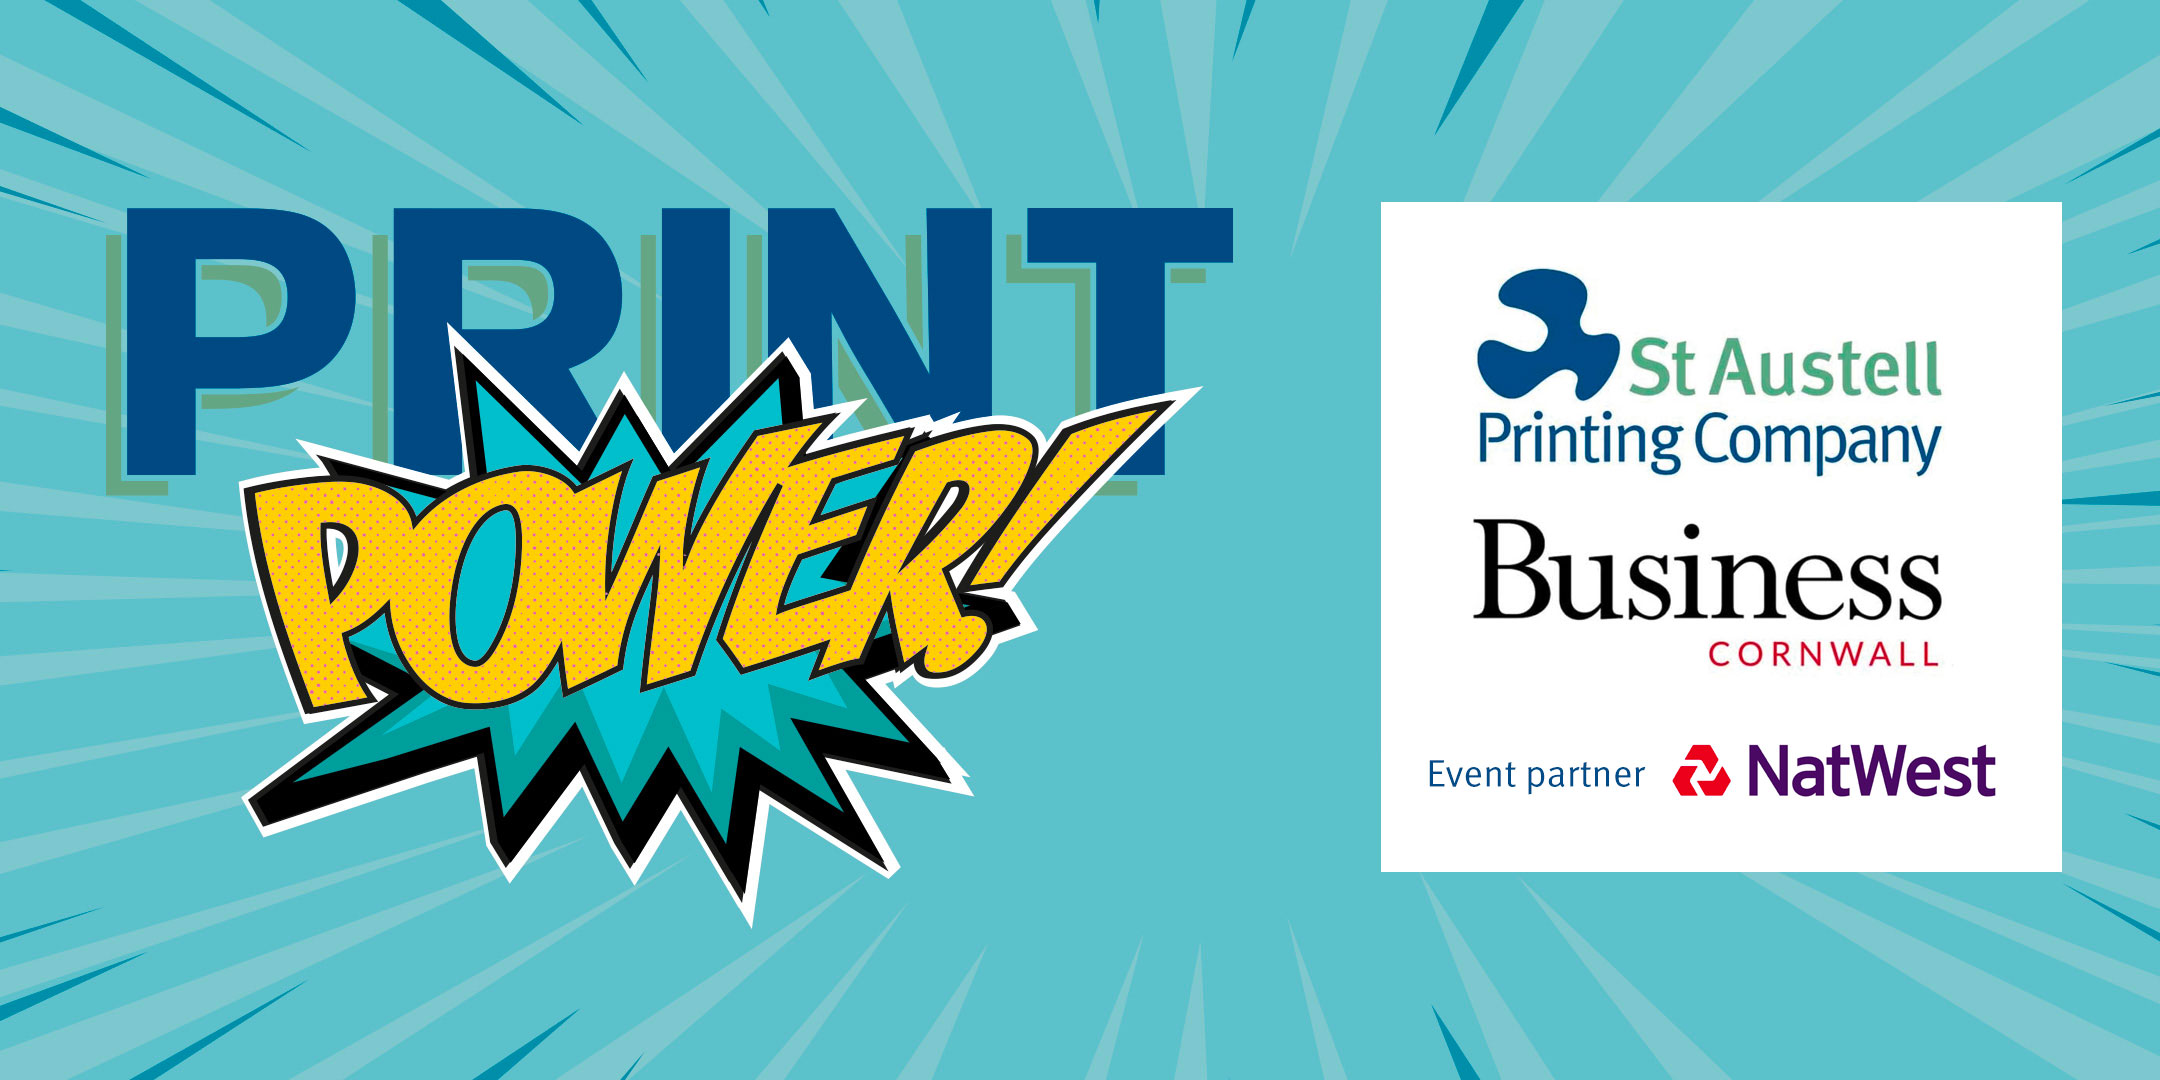 Print Power 2019 at St Austell Printing Company